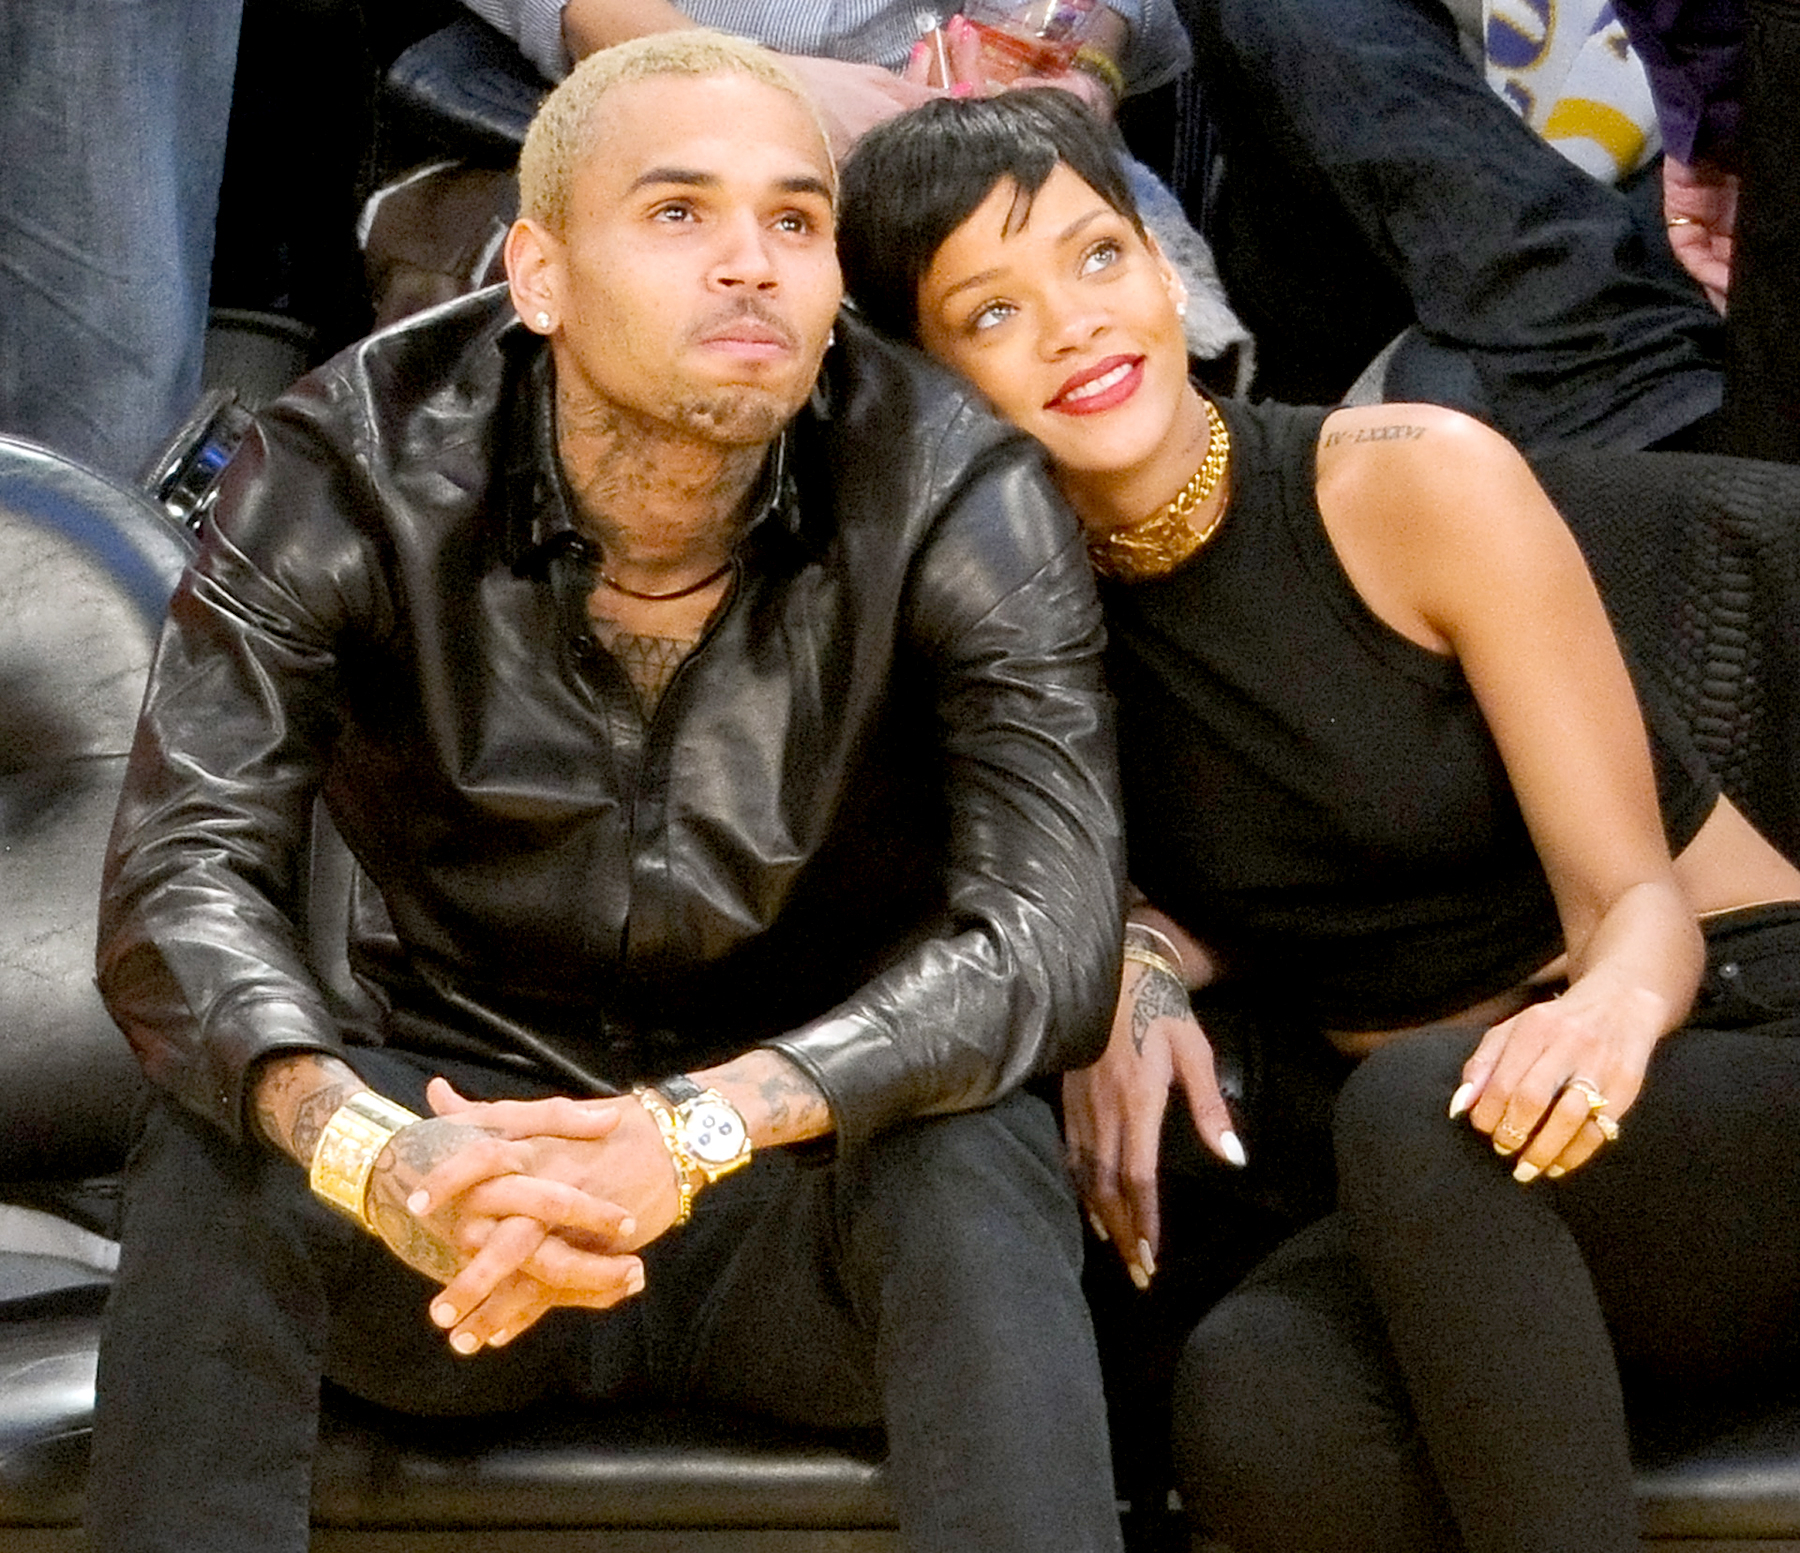 Chris Brown and Rihanna attend a basketball game between the New York Knicks and the Los Angeles Lakers at Staples Center on December 25, 2012 in Los Angeles, California.